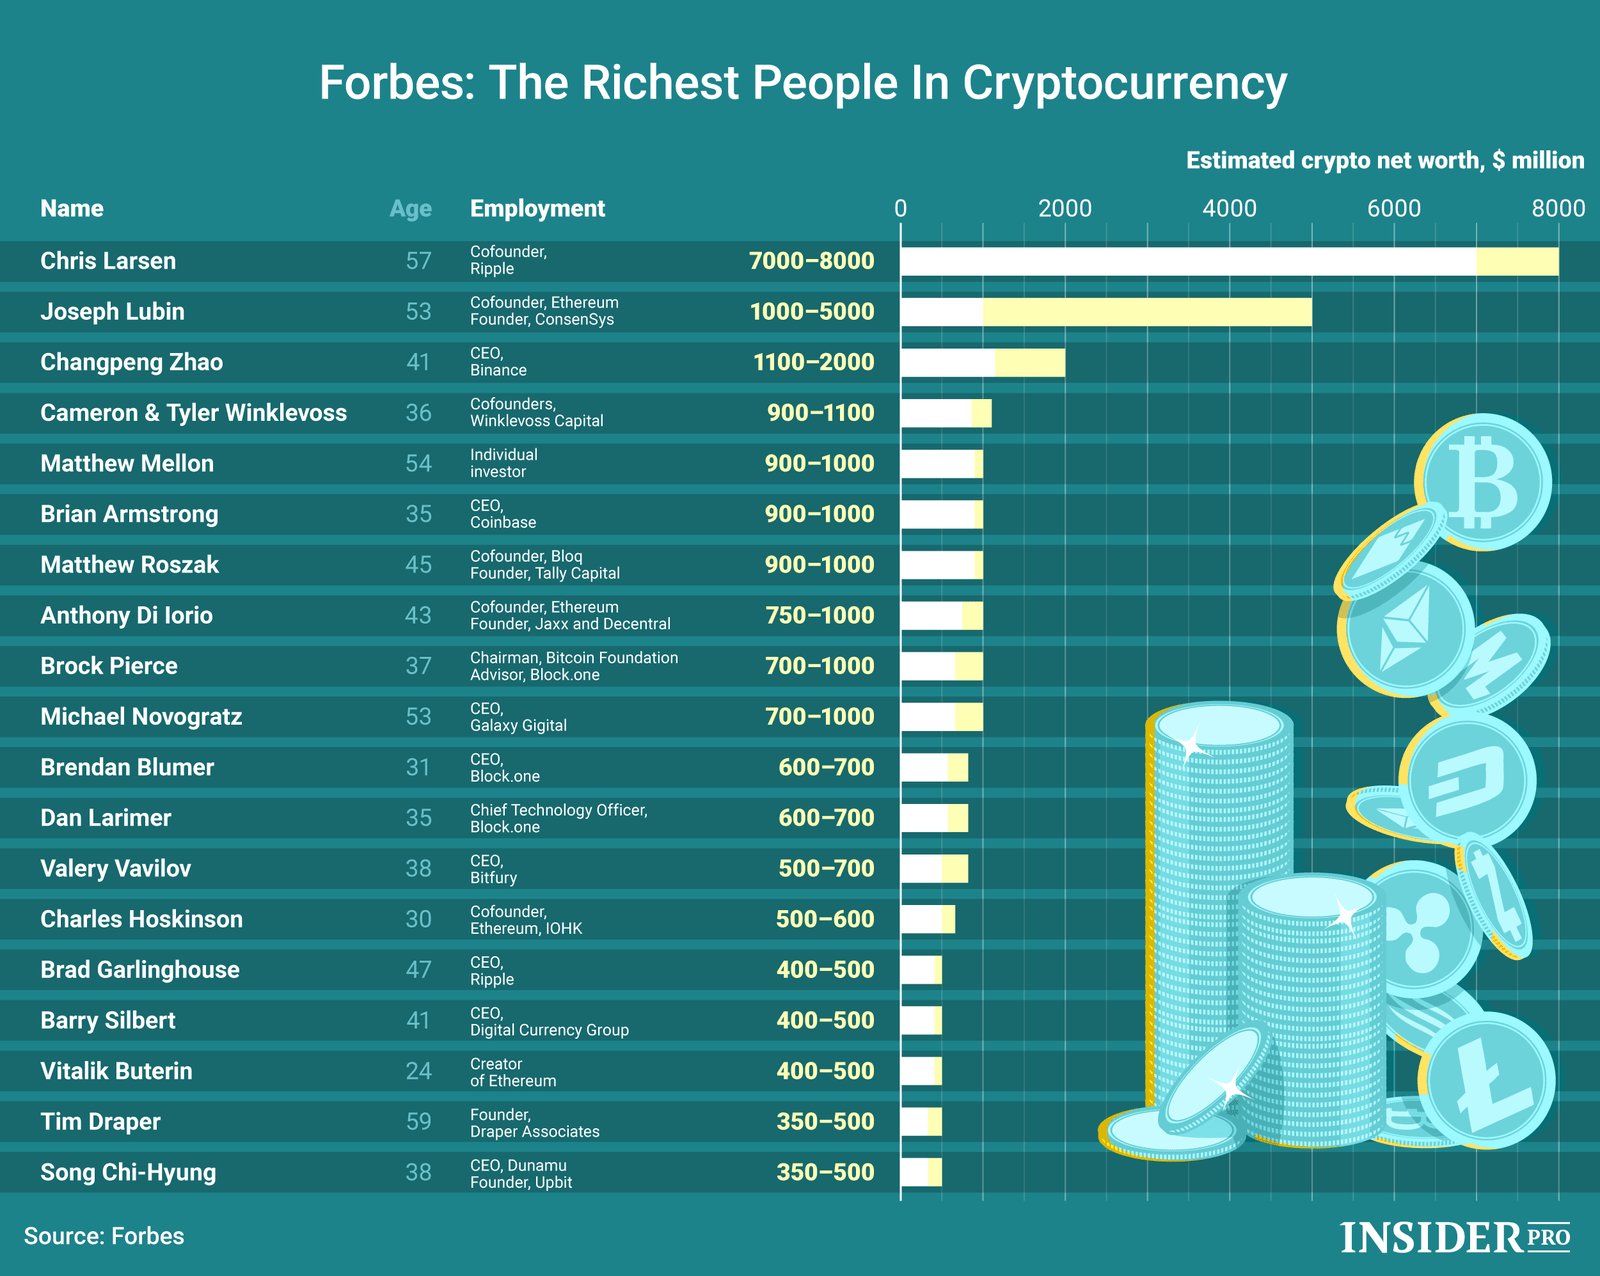 Top Crypto Billionaires